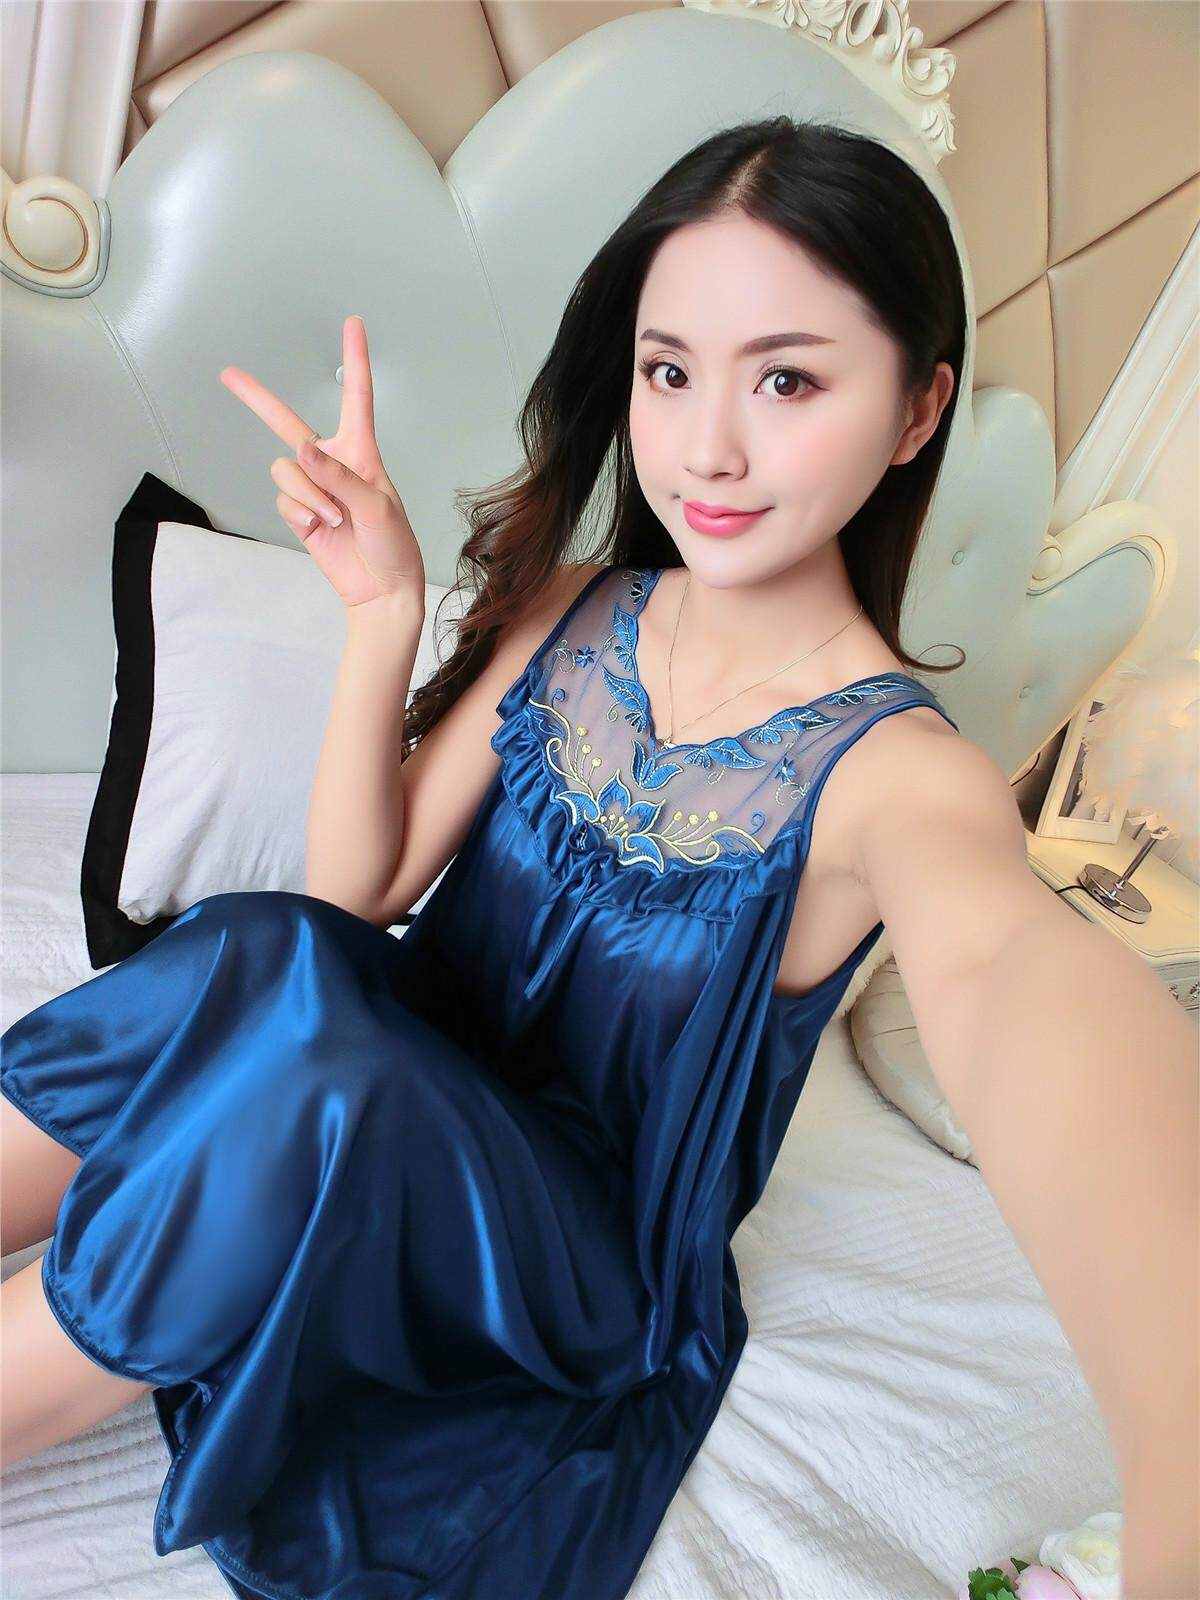 Bolster Store Ladies Women Sexy lingerie Sleepwear Short Sleeve Bow Ribbon Lace Pajamas Long Dress Silk Comfortable Night Wear Pyjamas